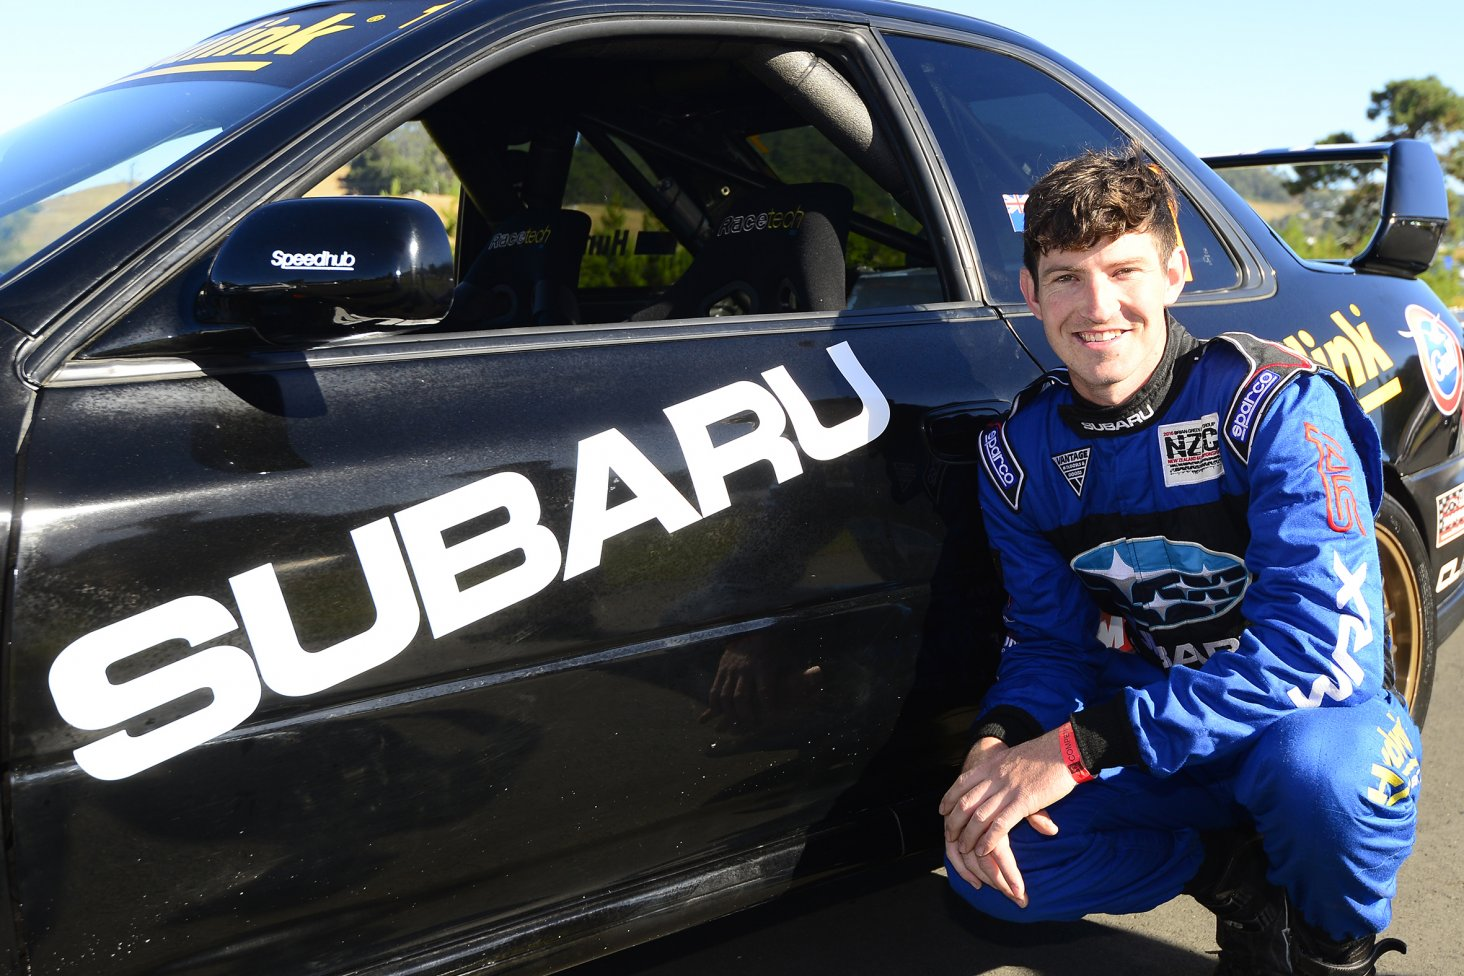 Subaru Brand Ambassador Ben Hunt with the 1999 Subaru WRX Coupe he is driving at the Leadfoot Festival. PHOTO: GEOFF RIDDER